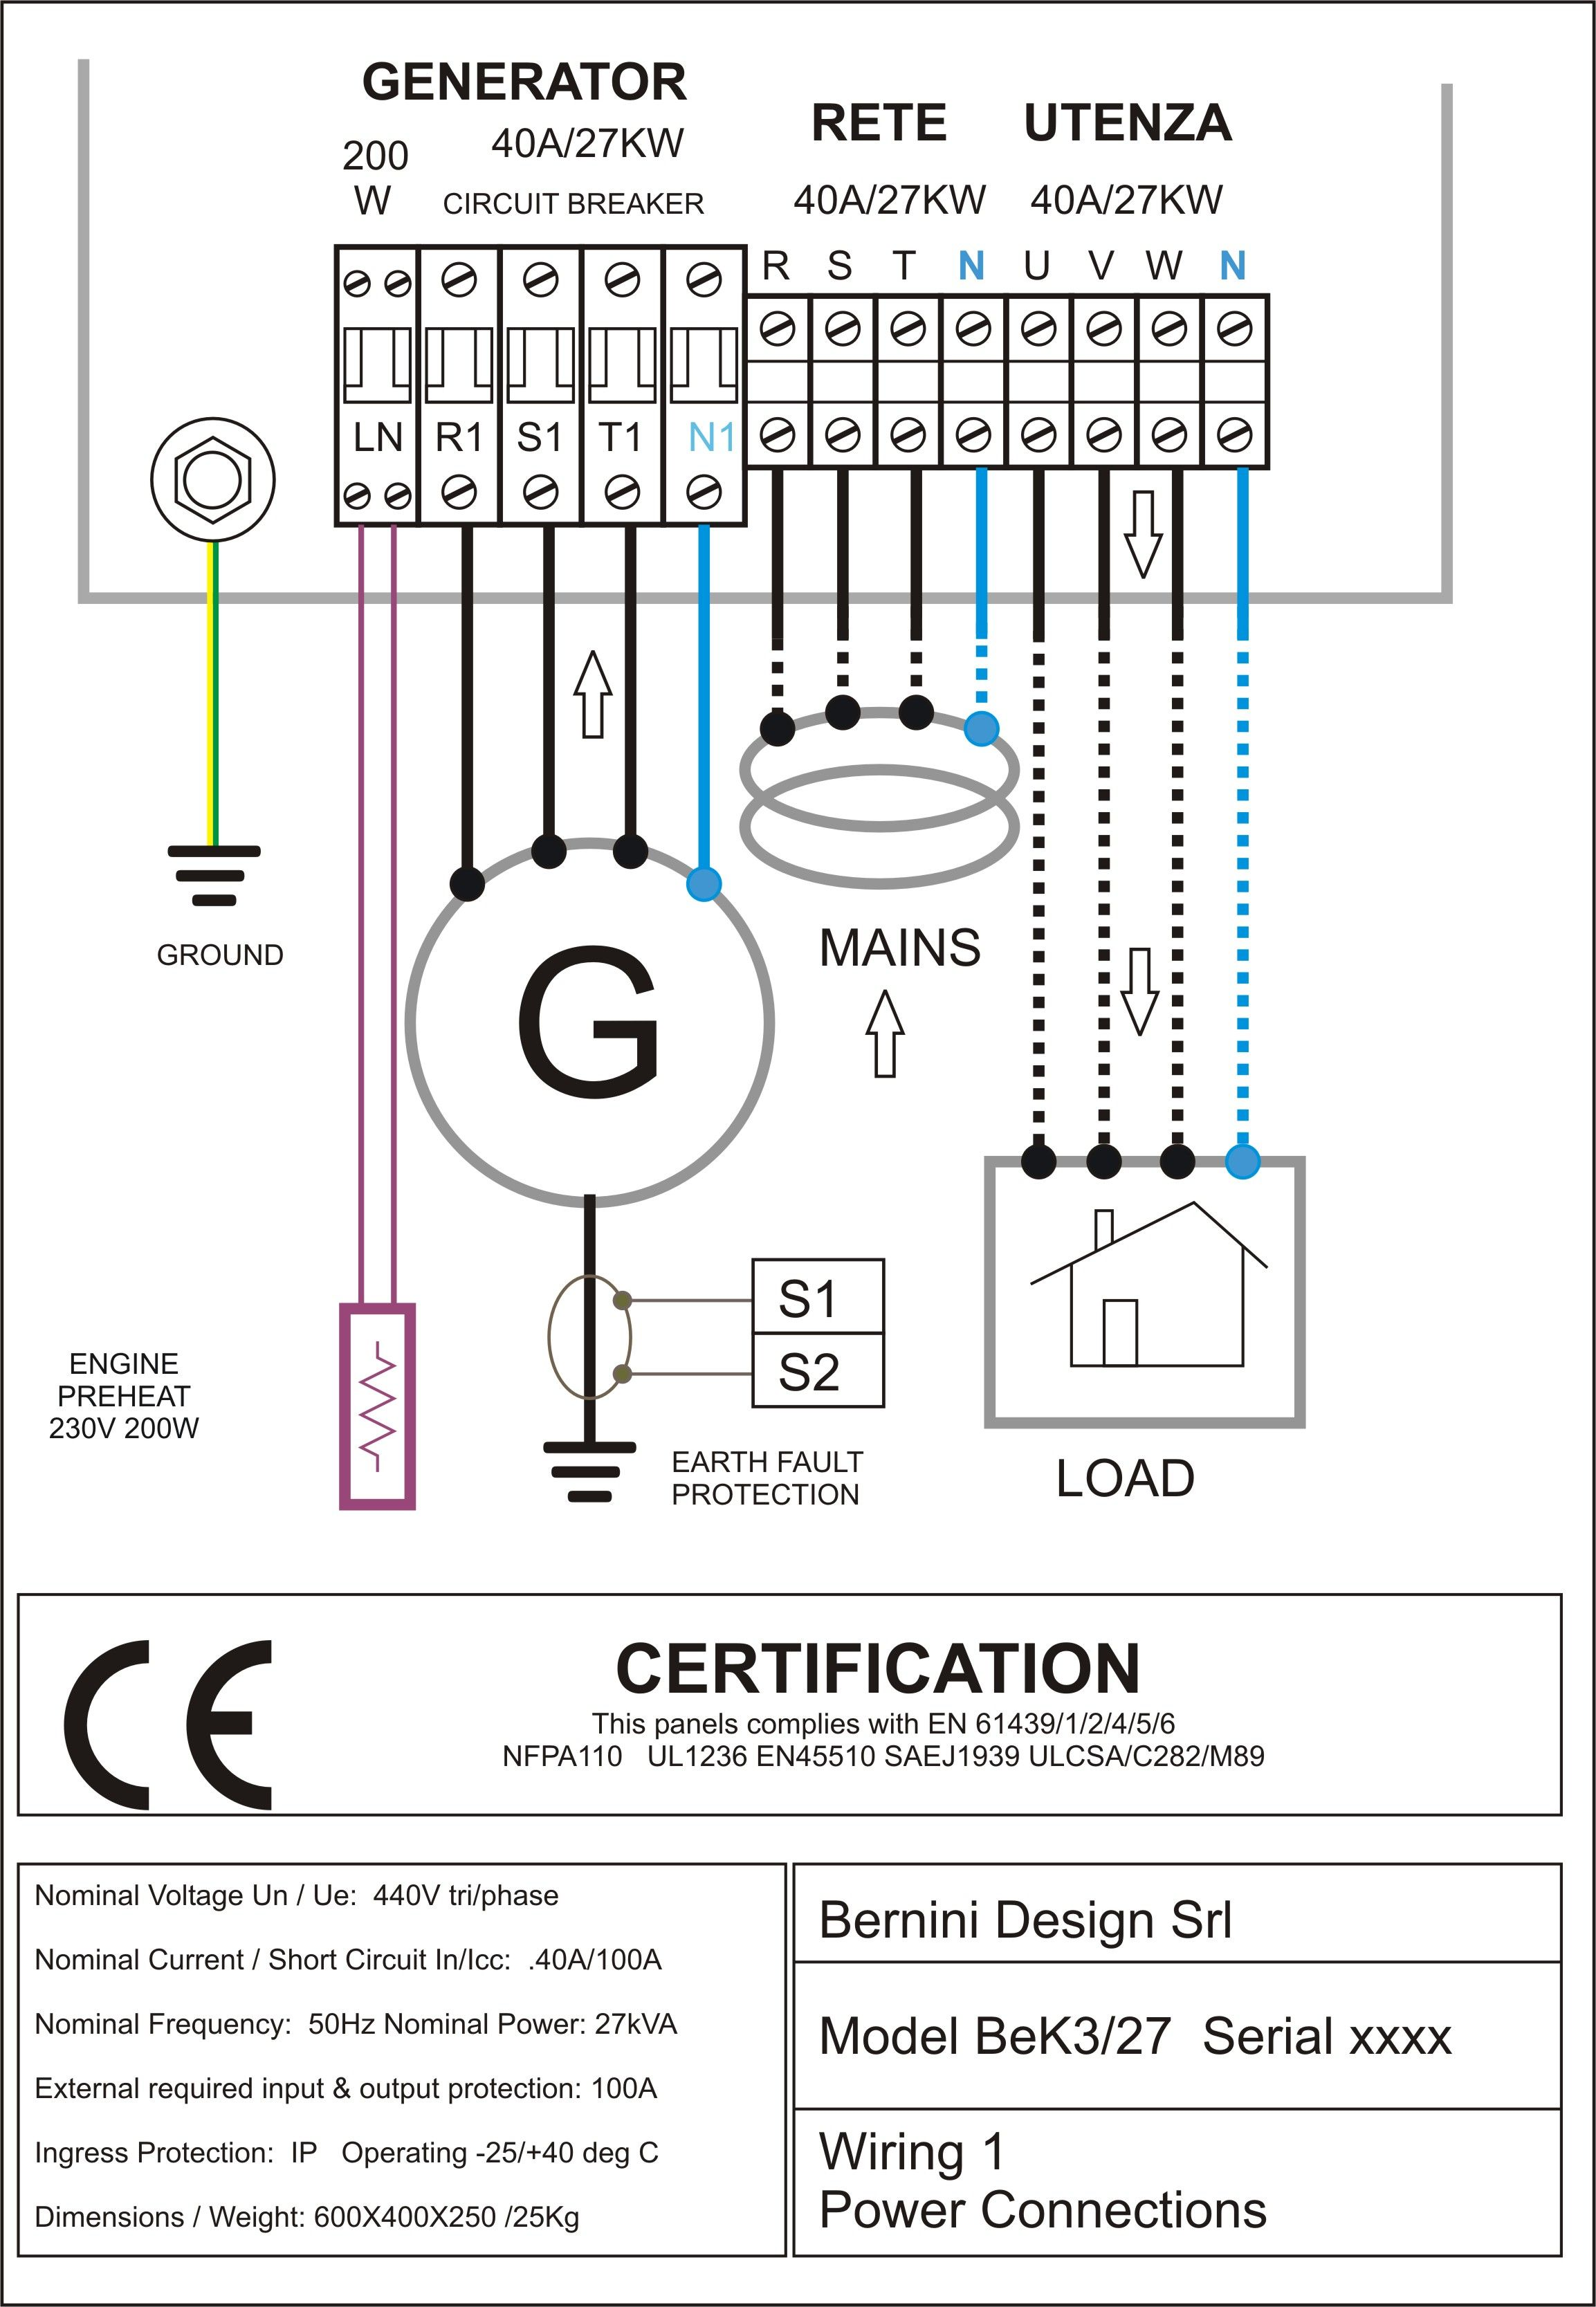 e789bca93f9142d48250ddc66668a81d diesel generator control panel wiring diagram ac connections gr ac generator wiring schematic at panicattacktreatment.co